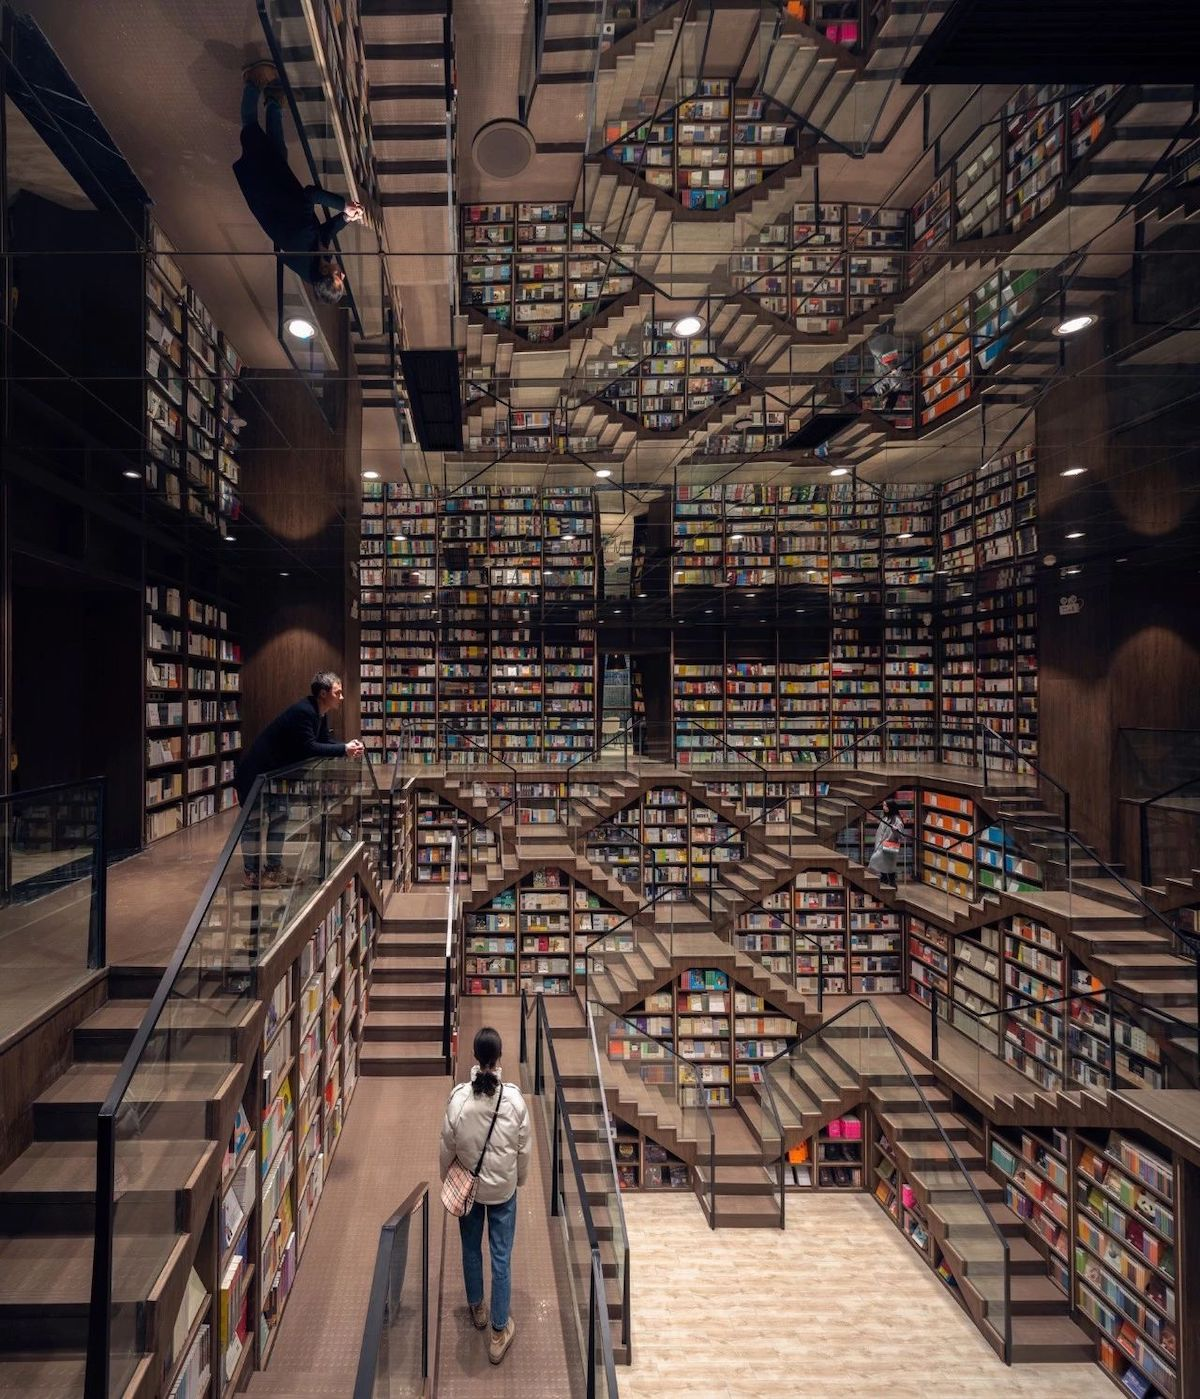 Incredible Bookstore in China